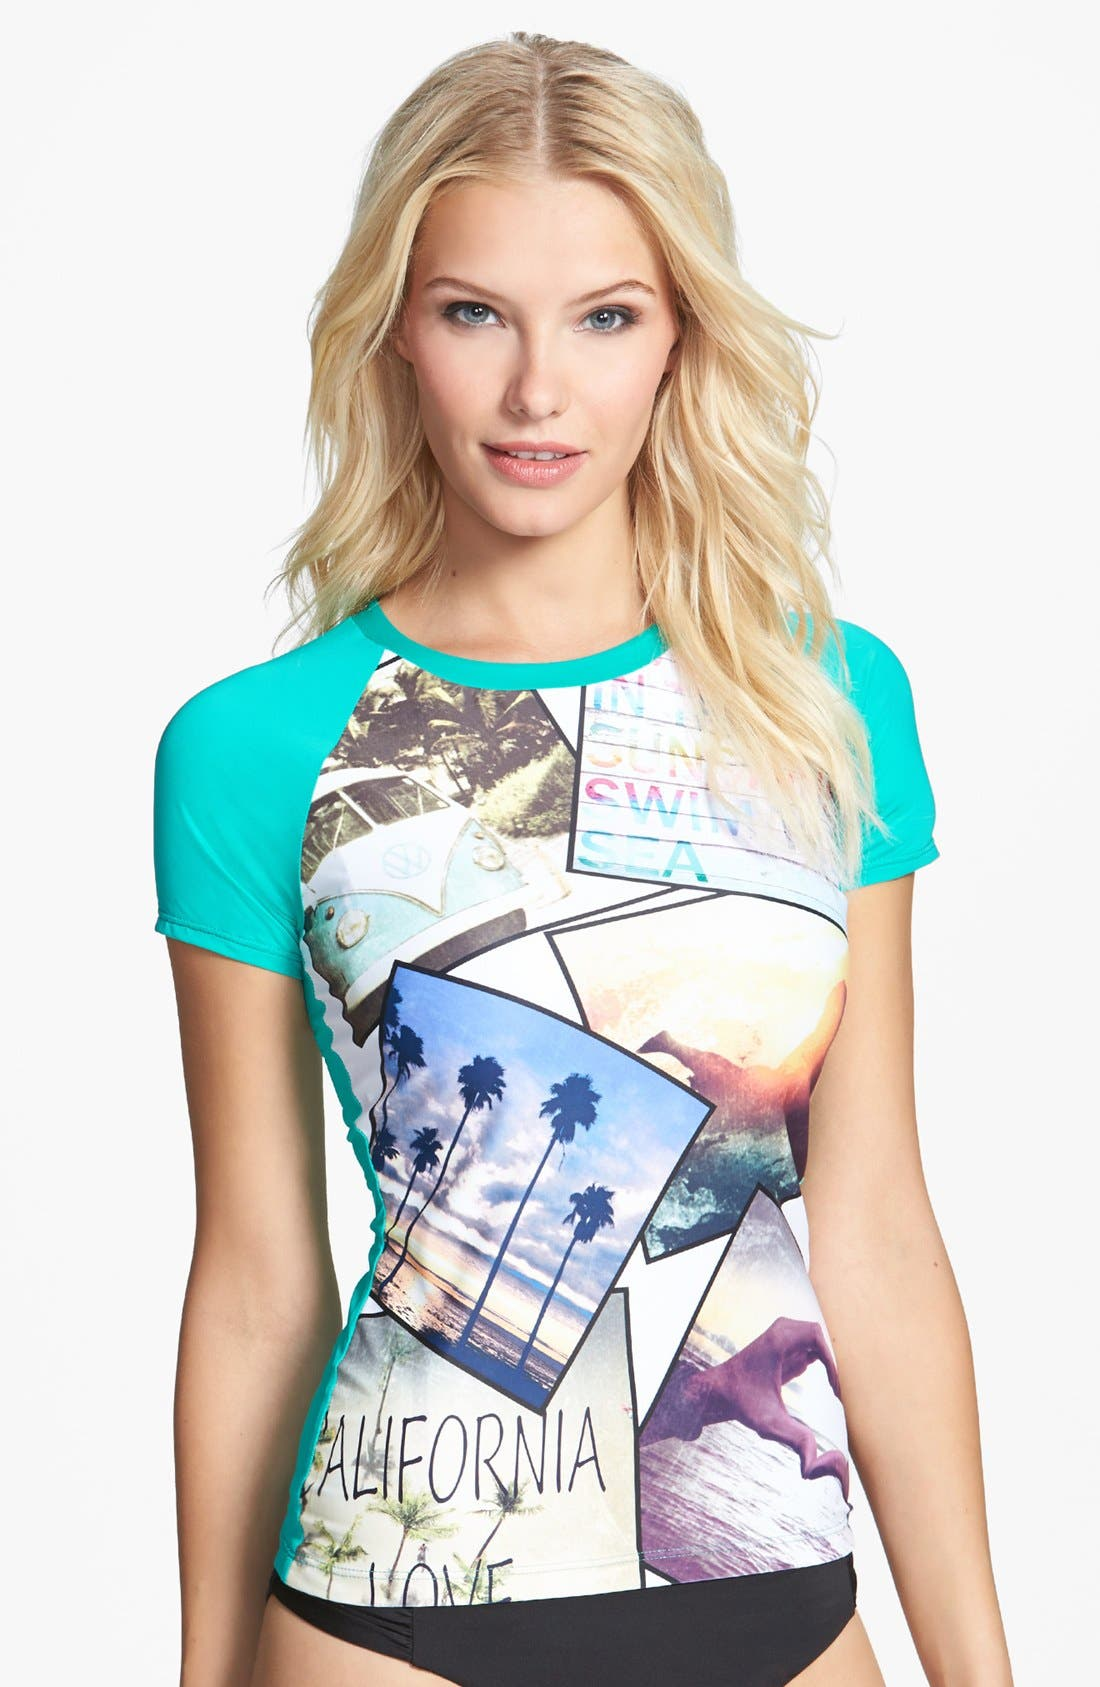 Main Image - W Swimwear 'California Love' Rashguard